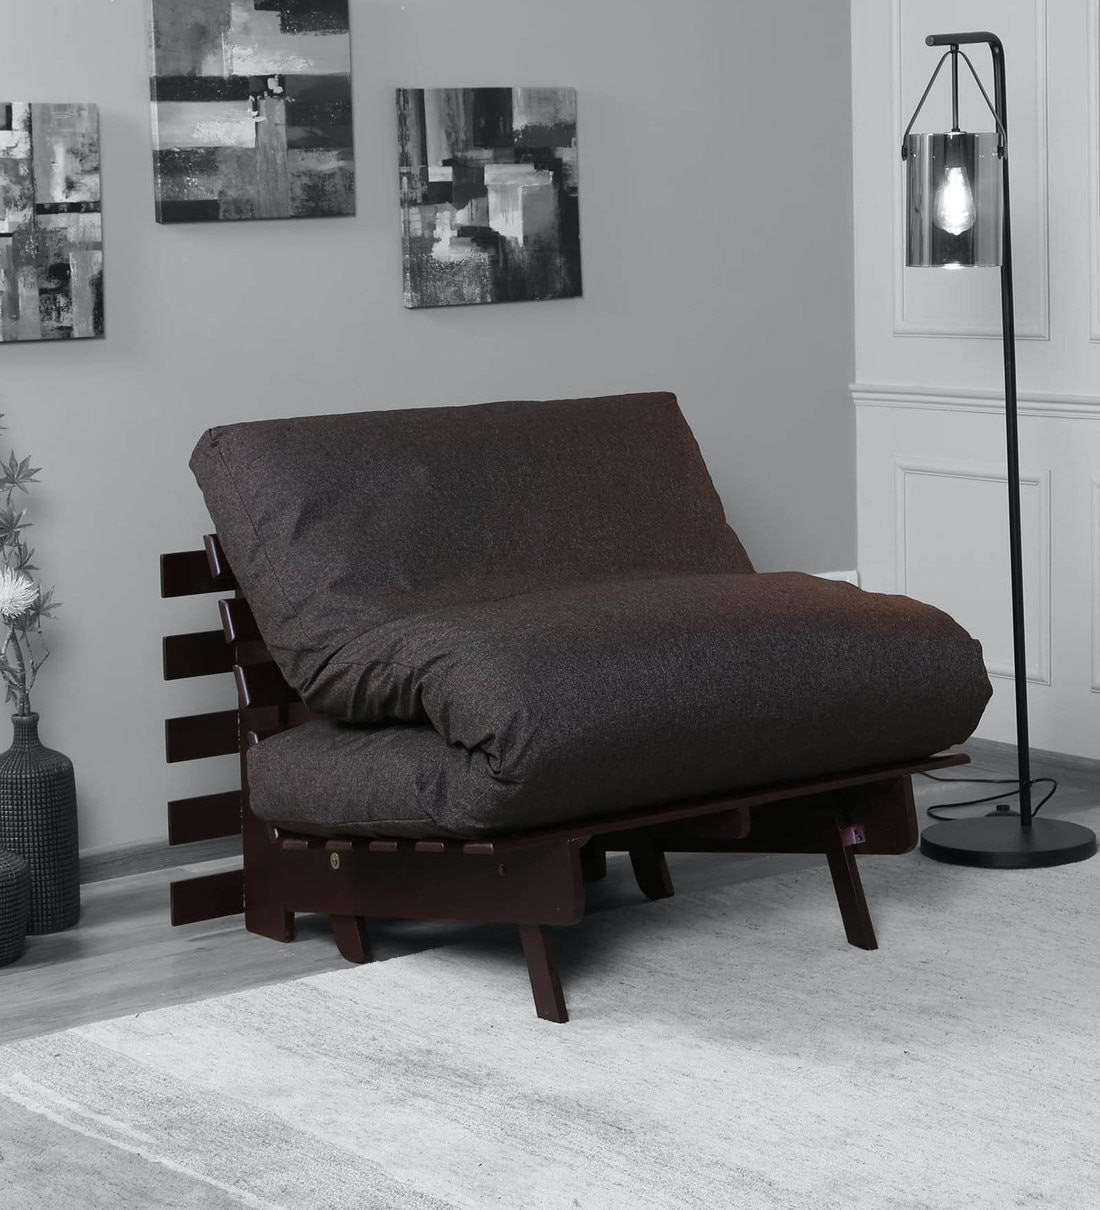 Buy Kobe Single Futon Sofa Cum Bed With Mattress In Walnut Brown Colour Mintwud By Pepperfry Online Single Futons Futons Furniture Pepperfry Product